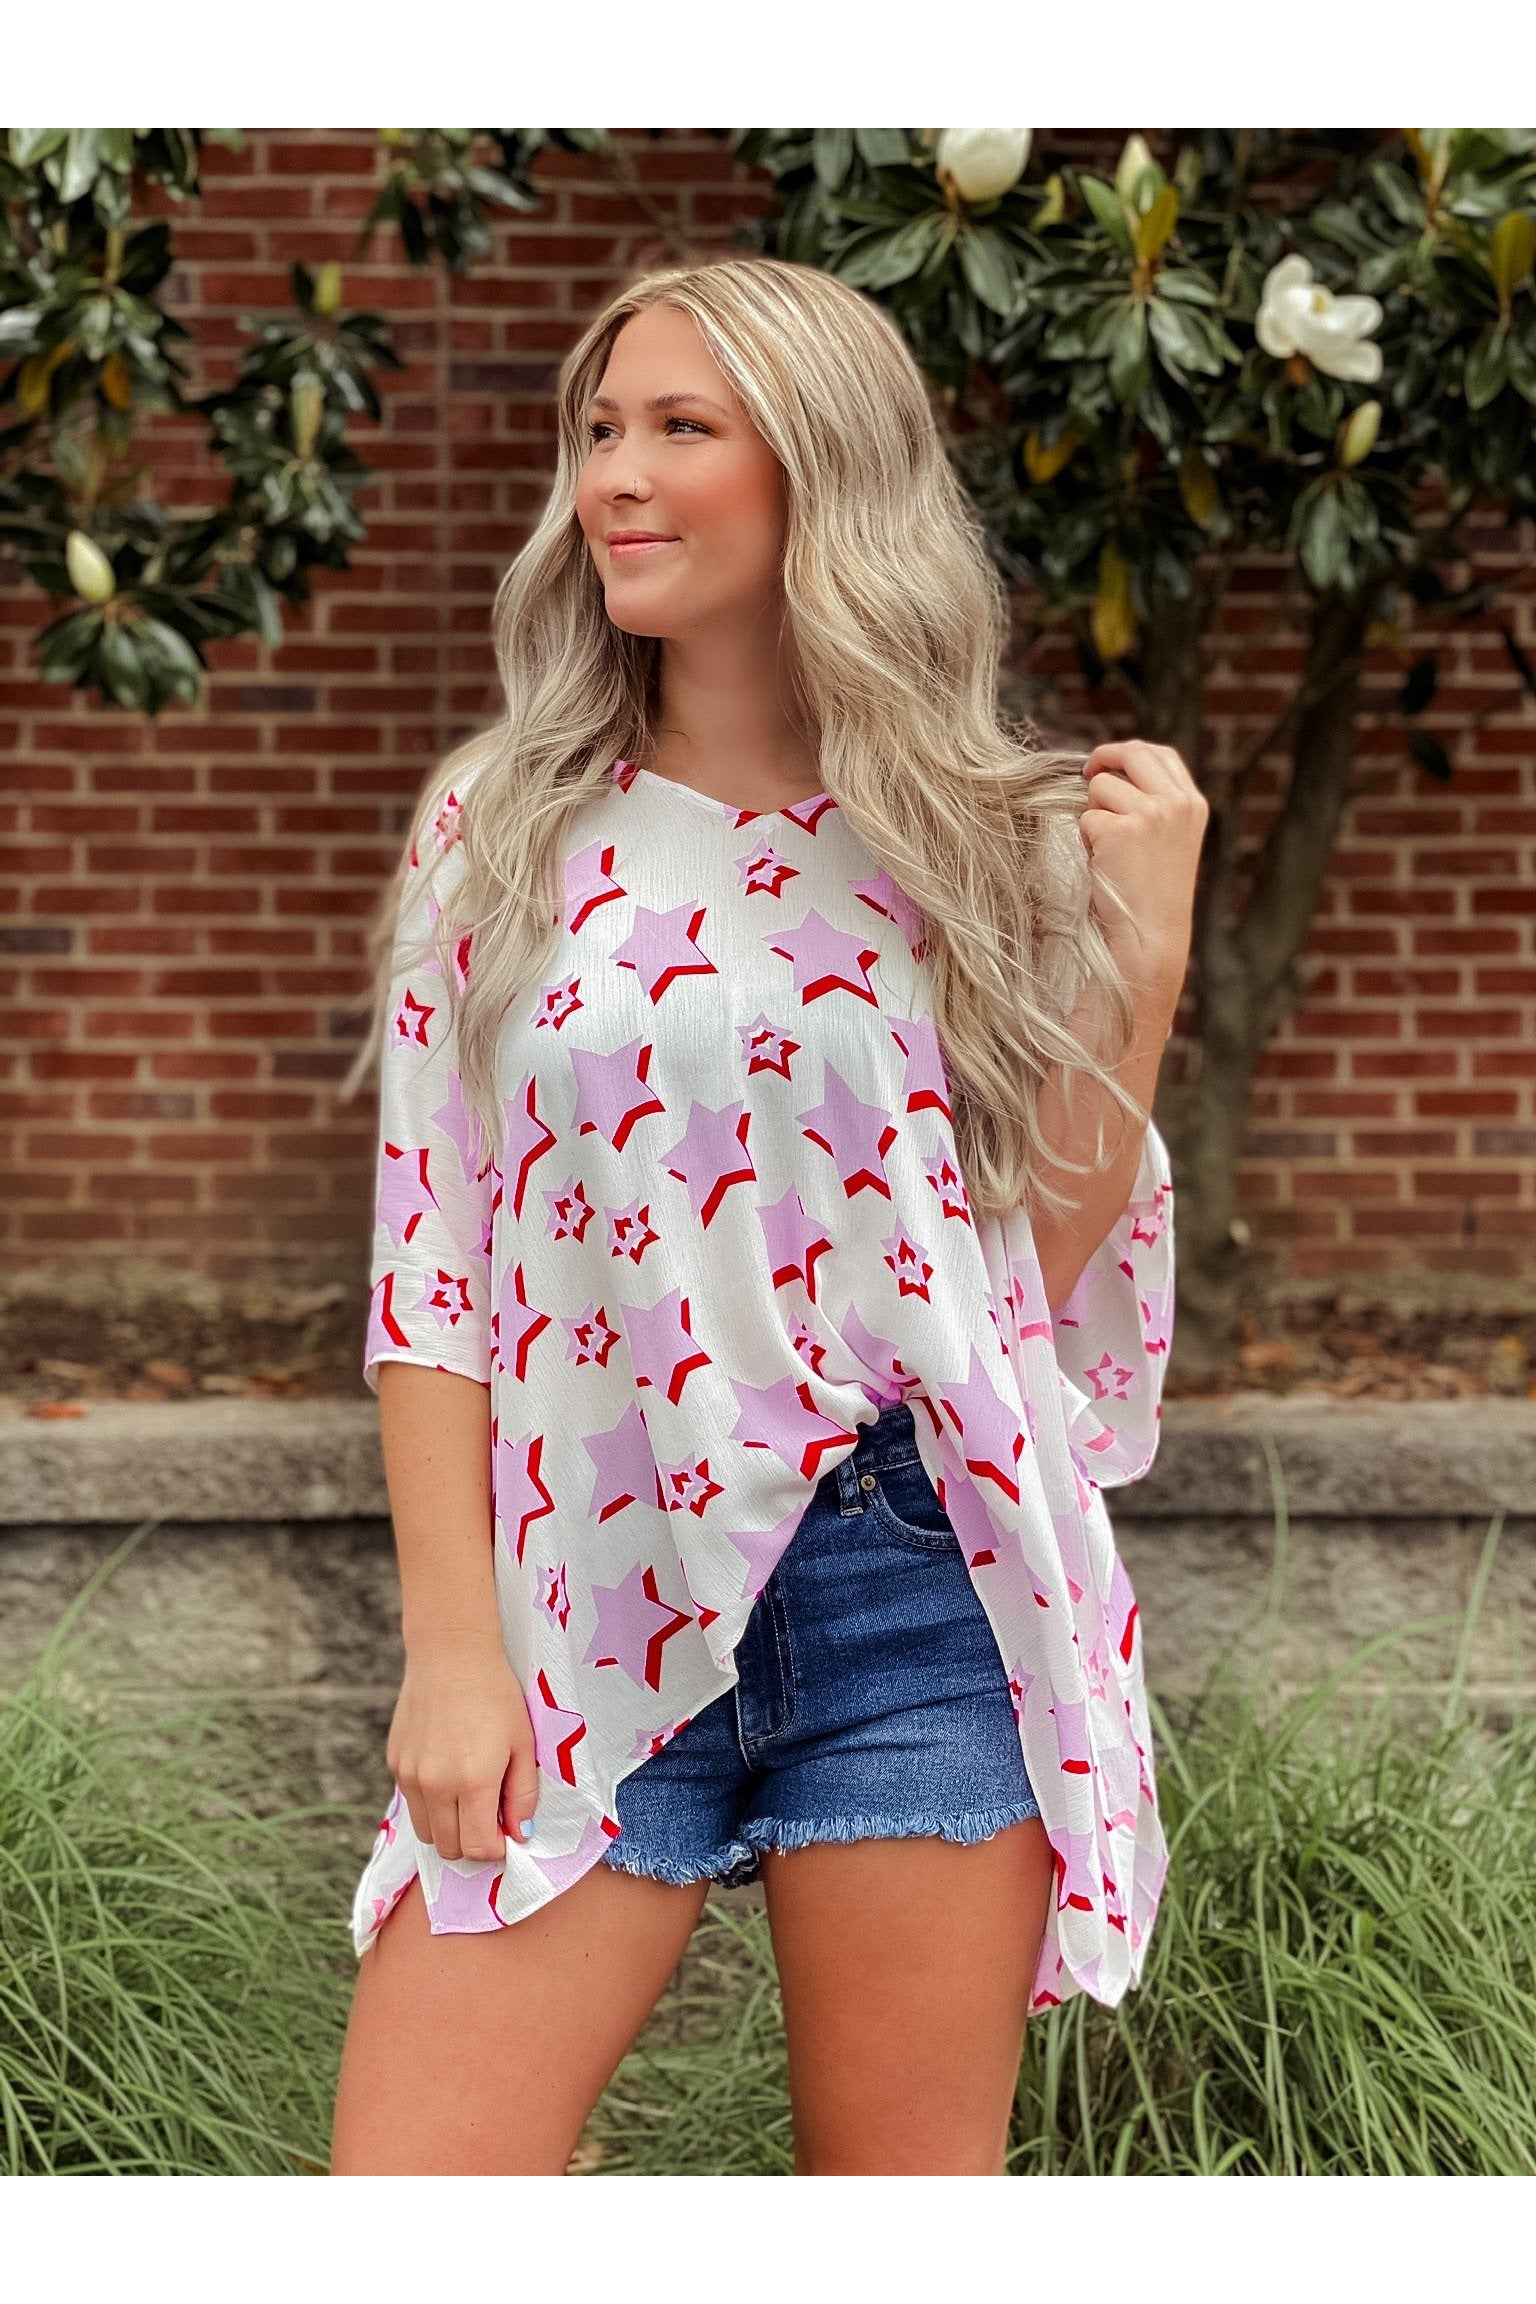 North Pink Sky Tunic By Buddy Love